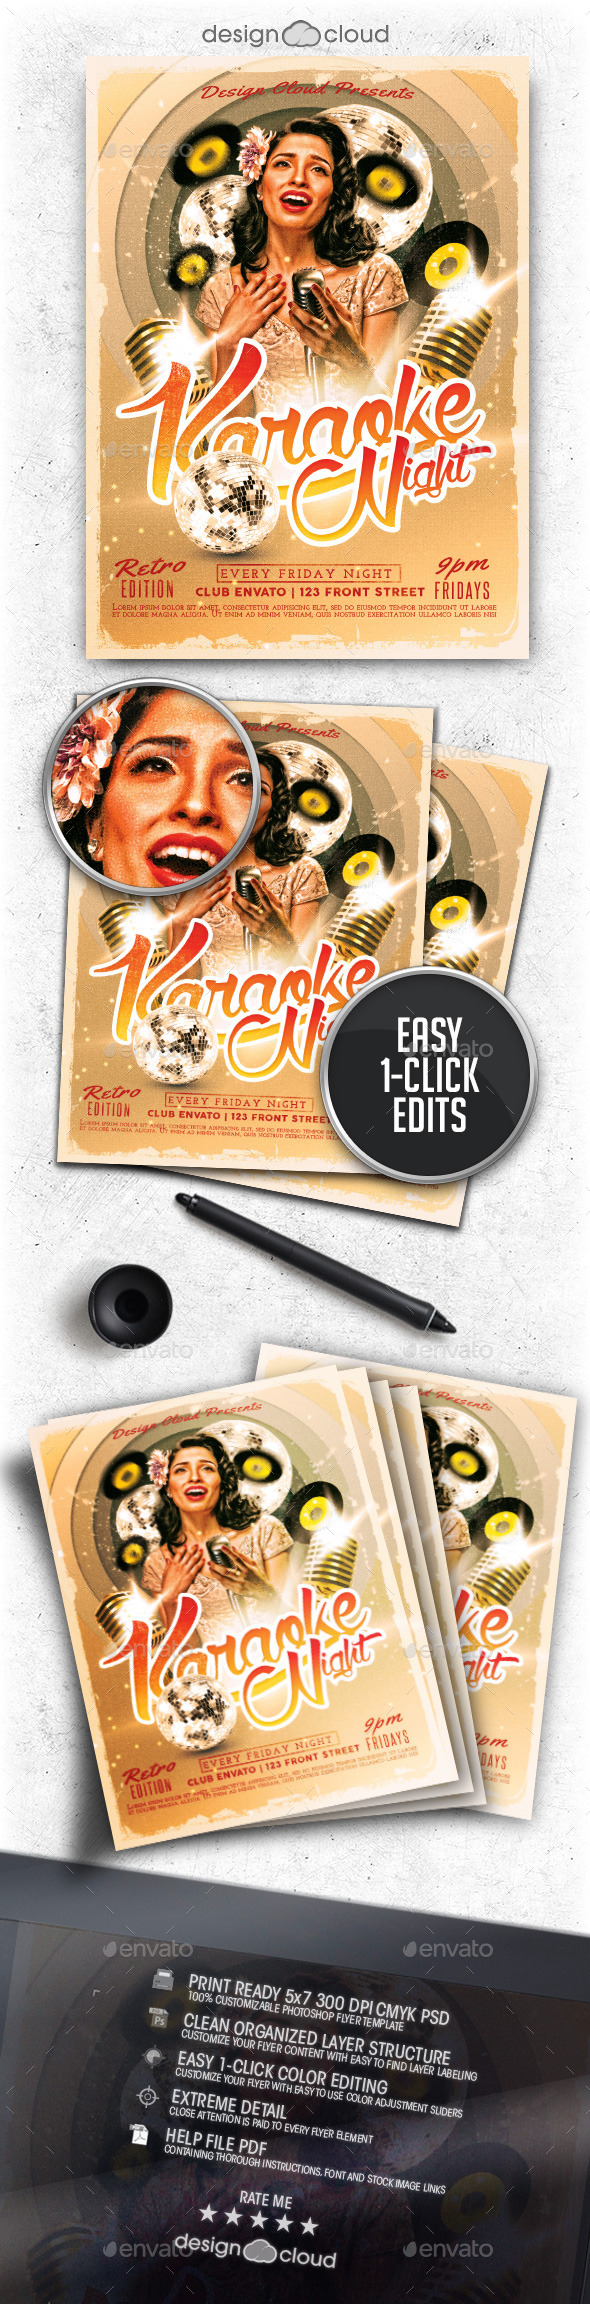 Retro Karaoke Night Flyer Template